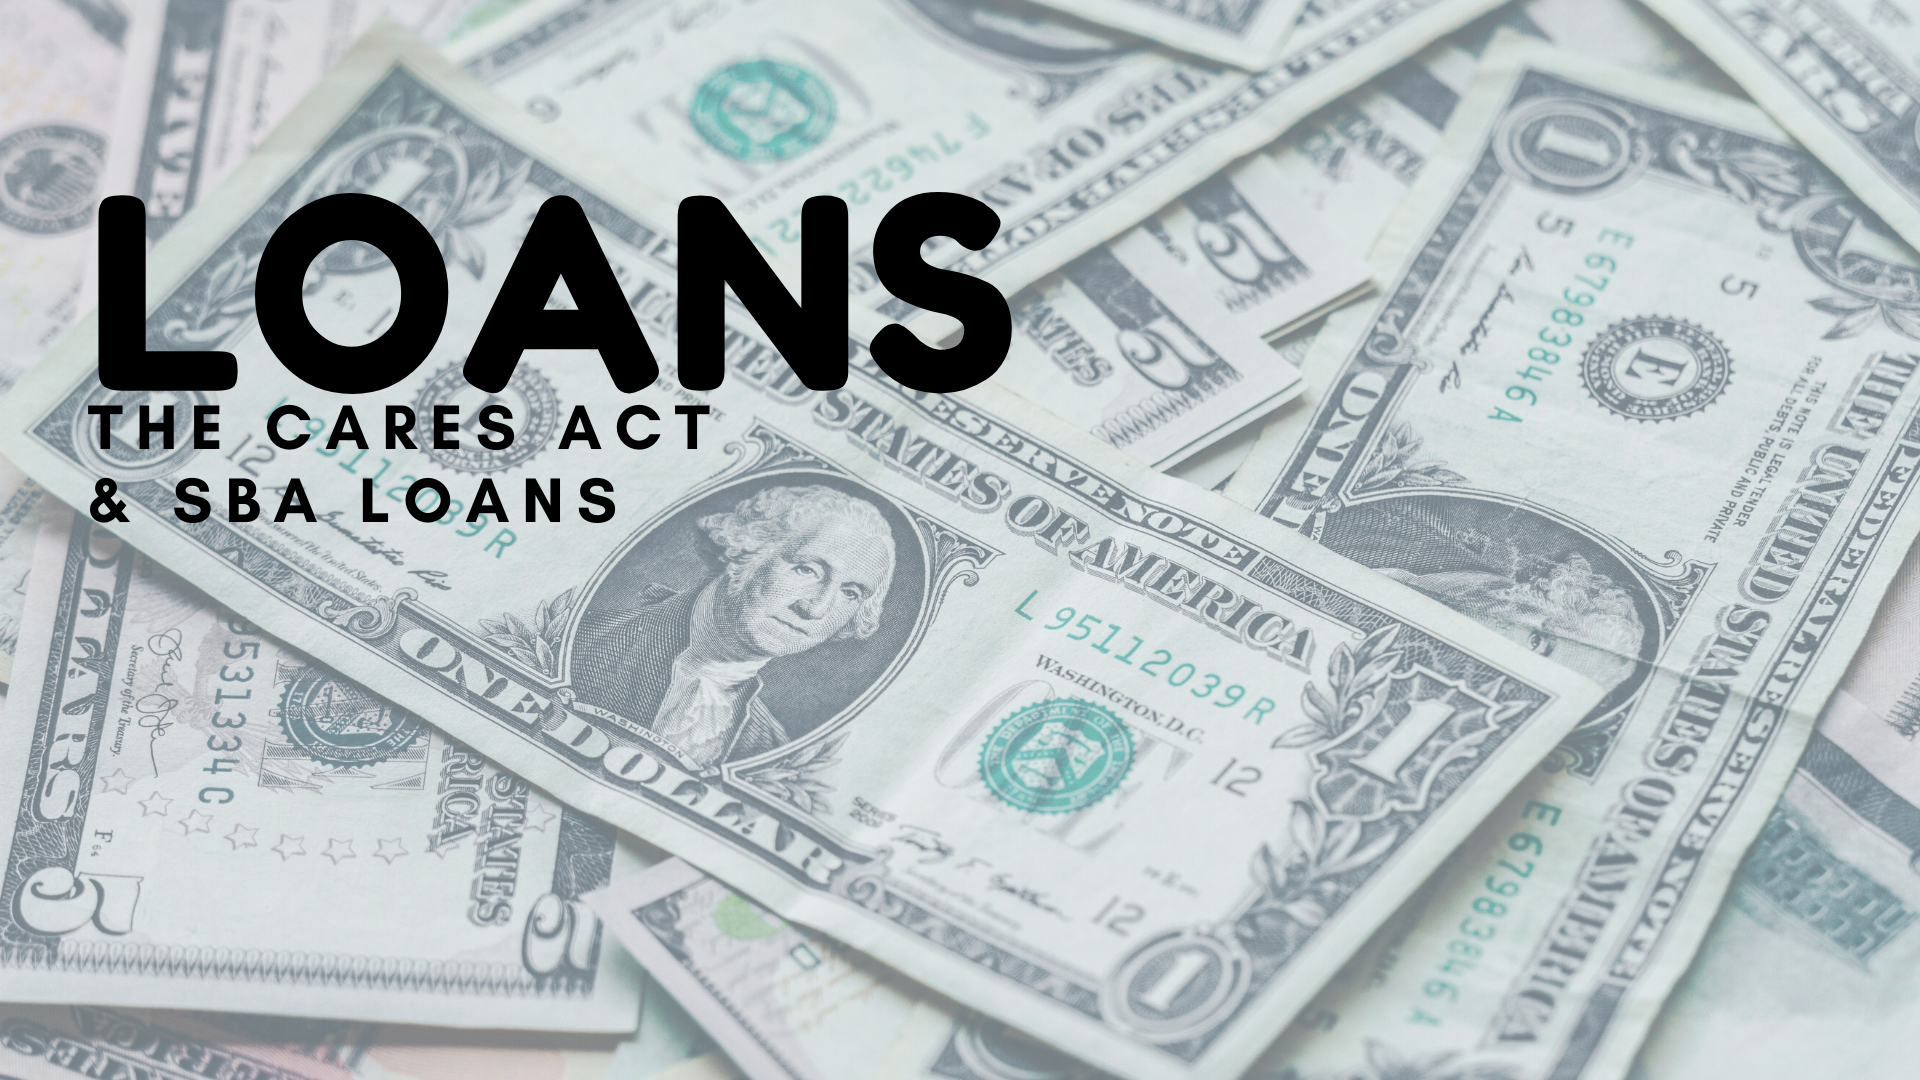 Loans:  The CARES Act & SBA Loans